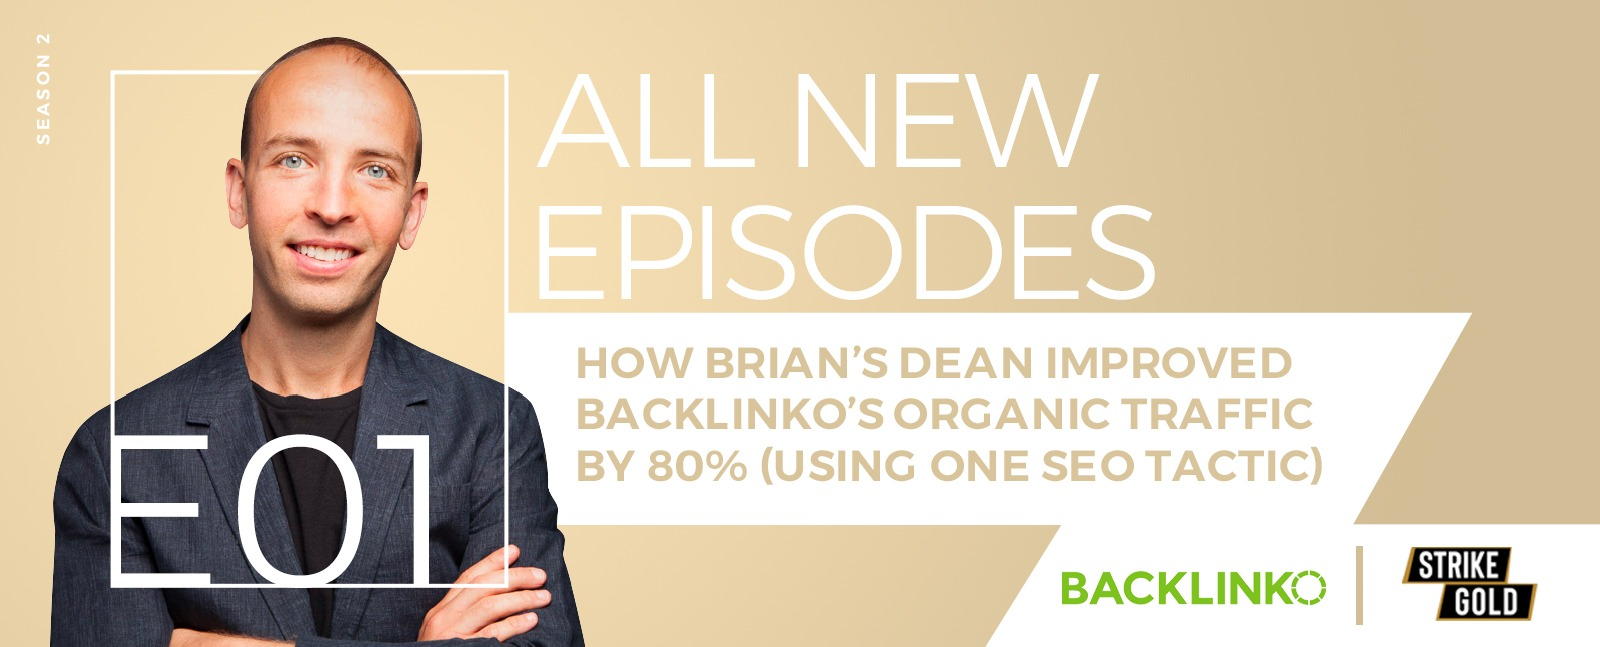 How Brian's Dean improved Backlinko's organic traffic by 80% (using one SEO tactic)